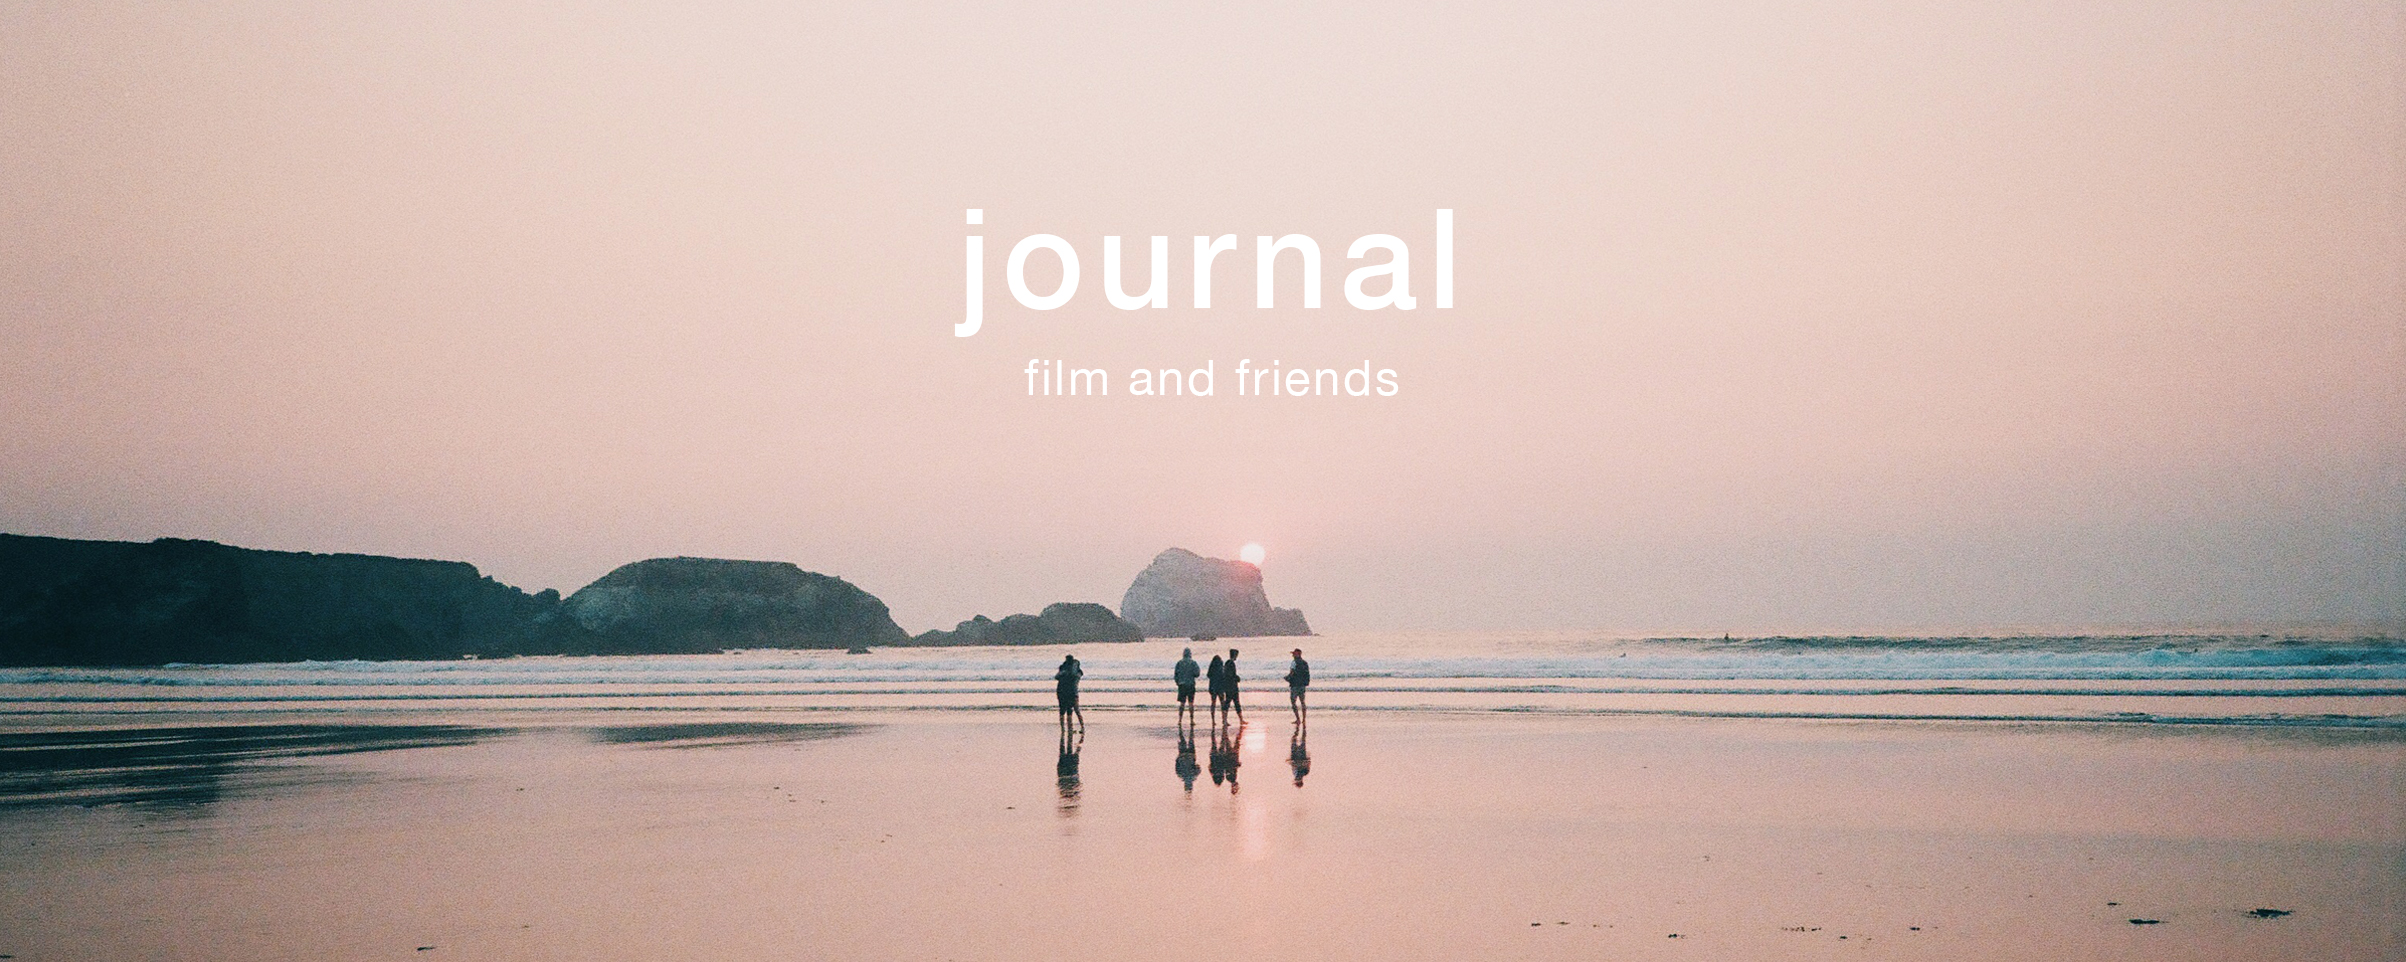 film and friends 2.jpg